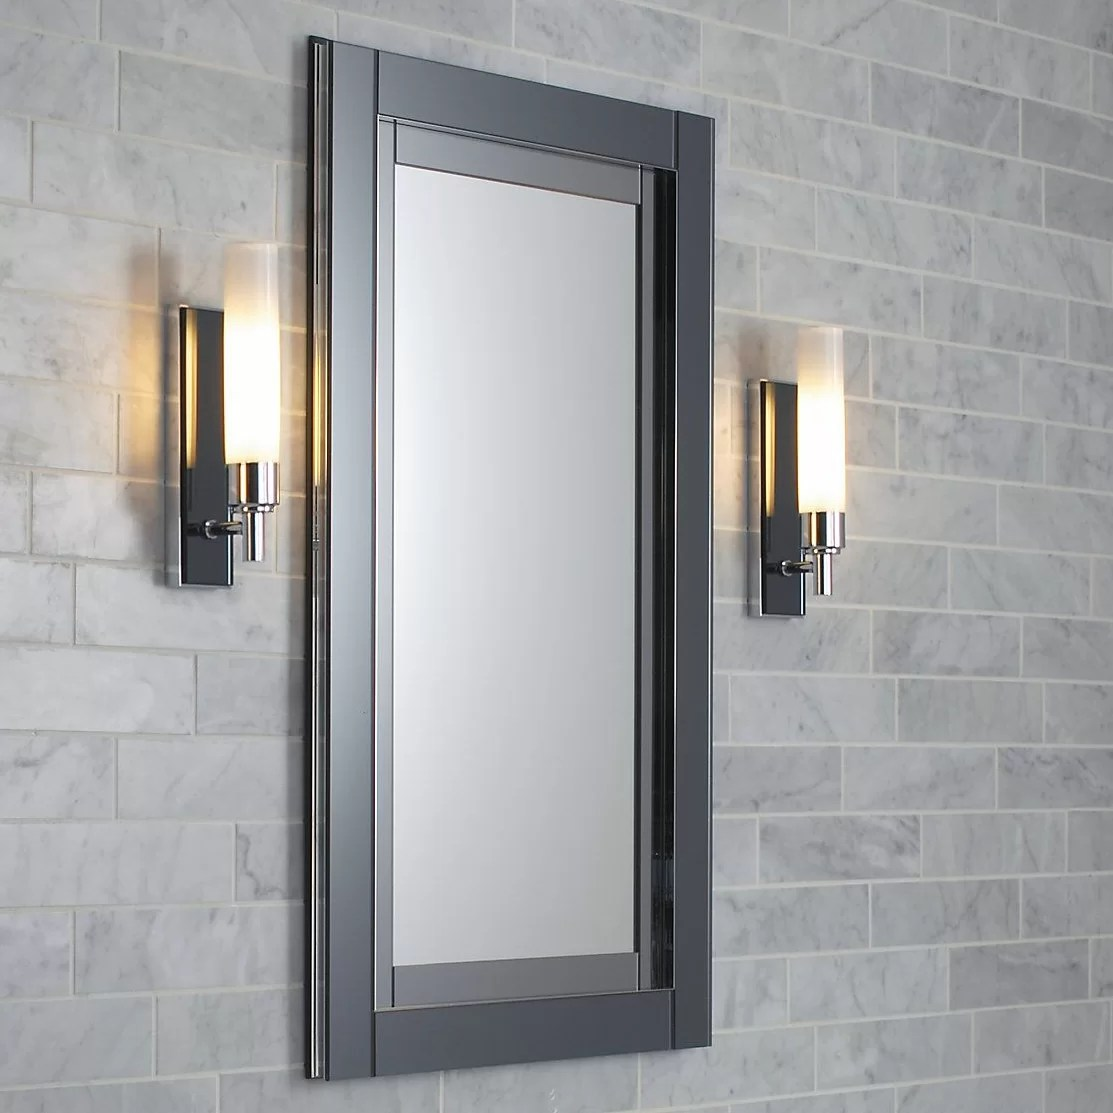 "Robern Candre 20"" x 30"" Mirrored Recessed Electric"